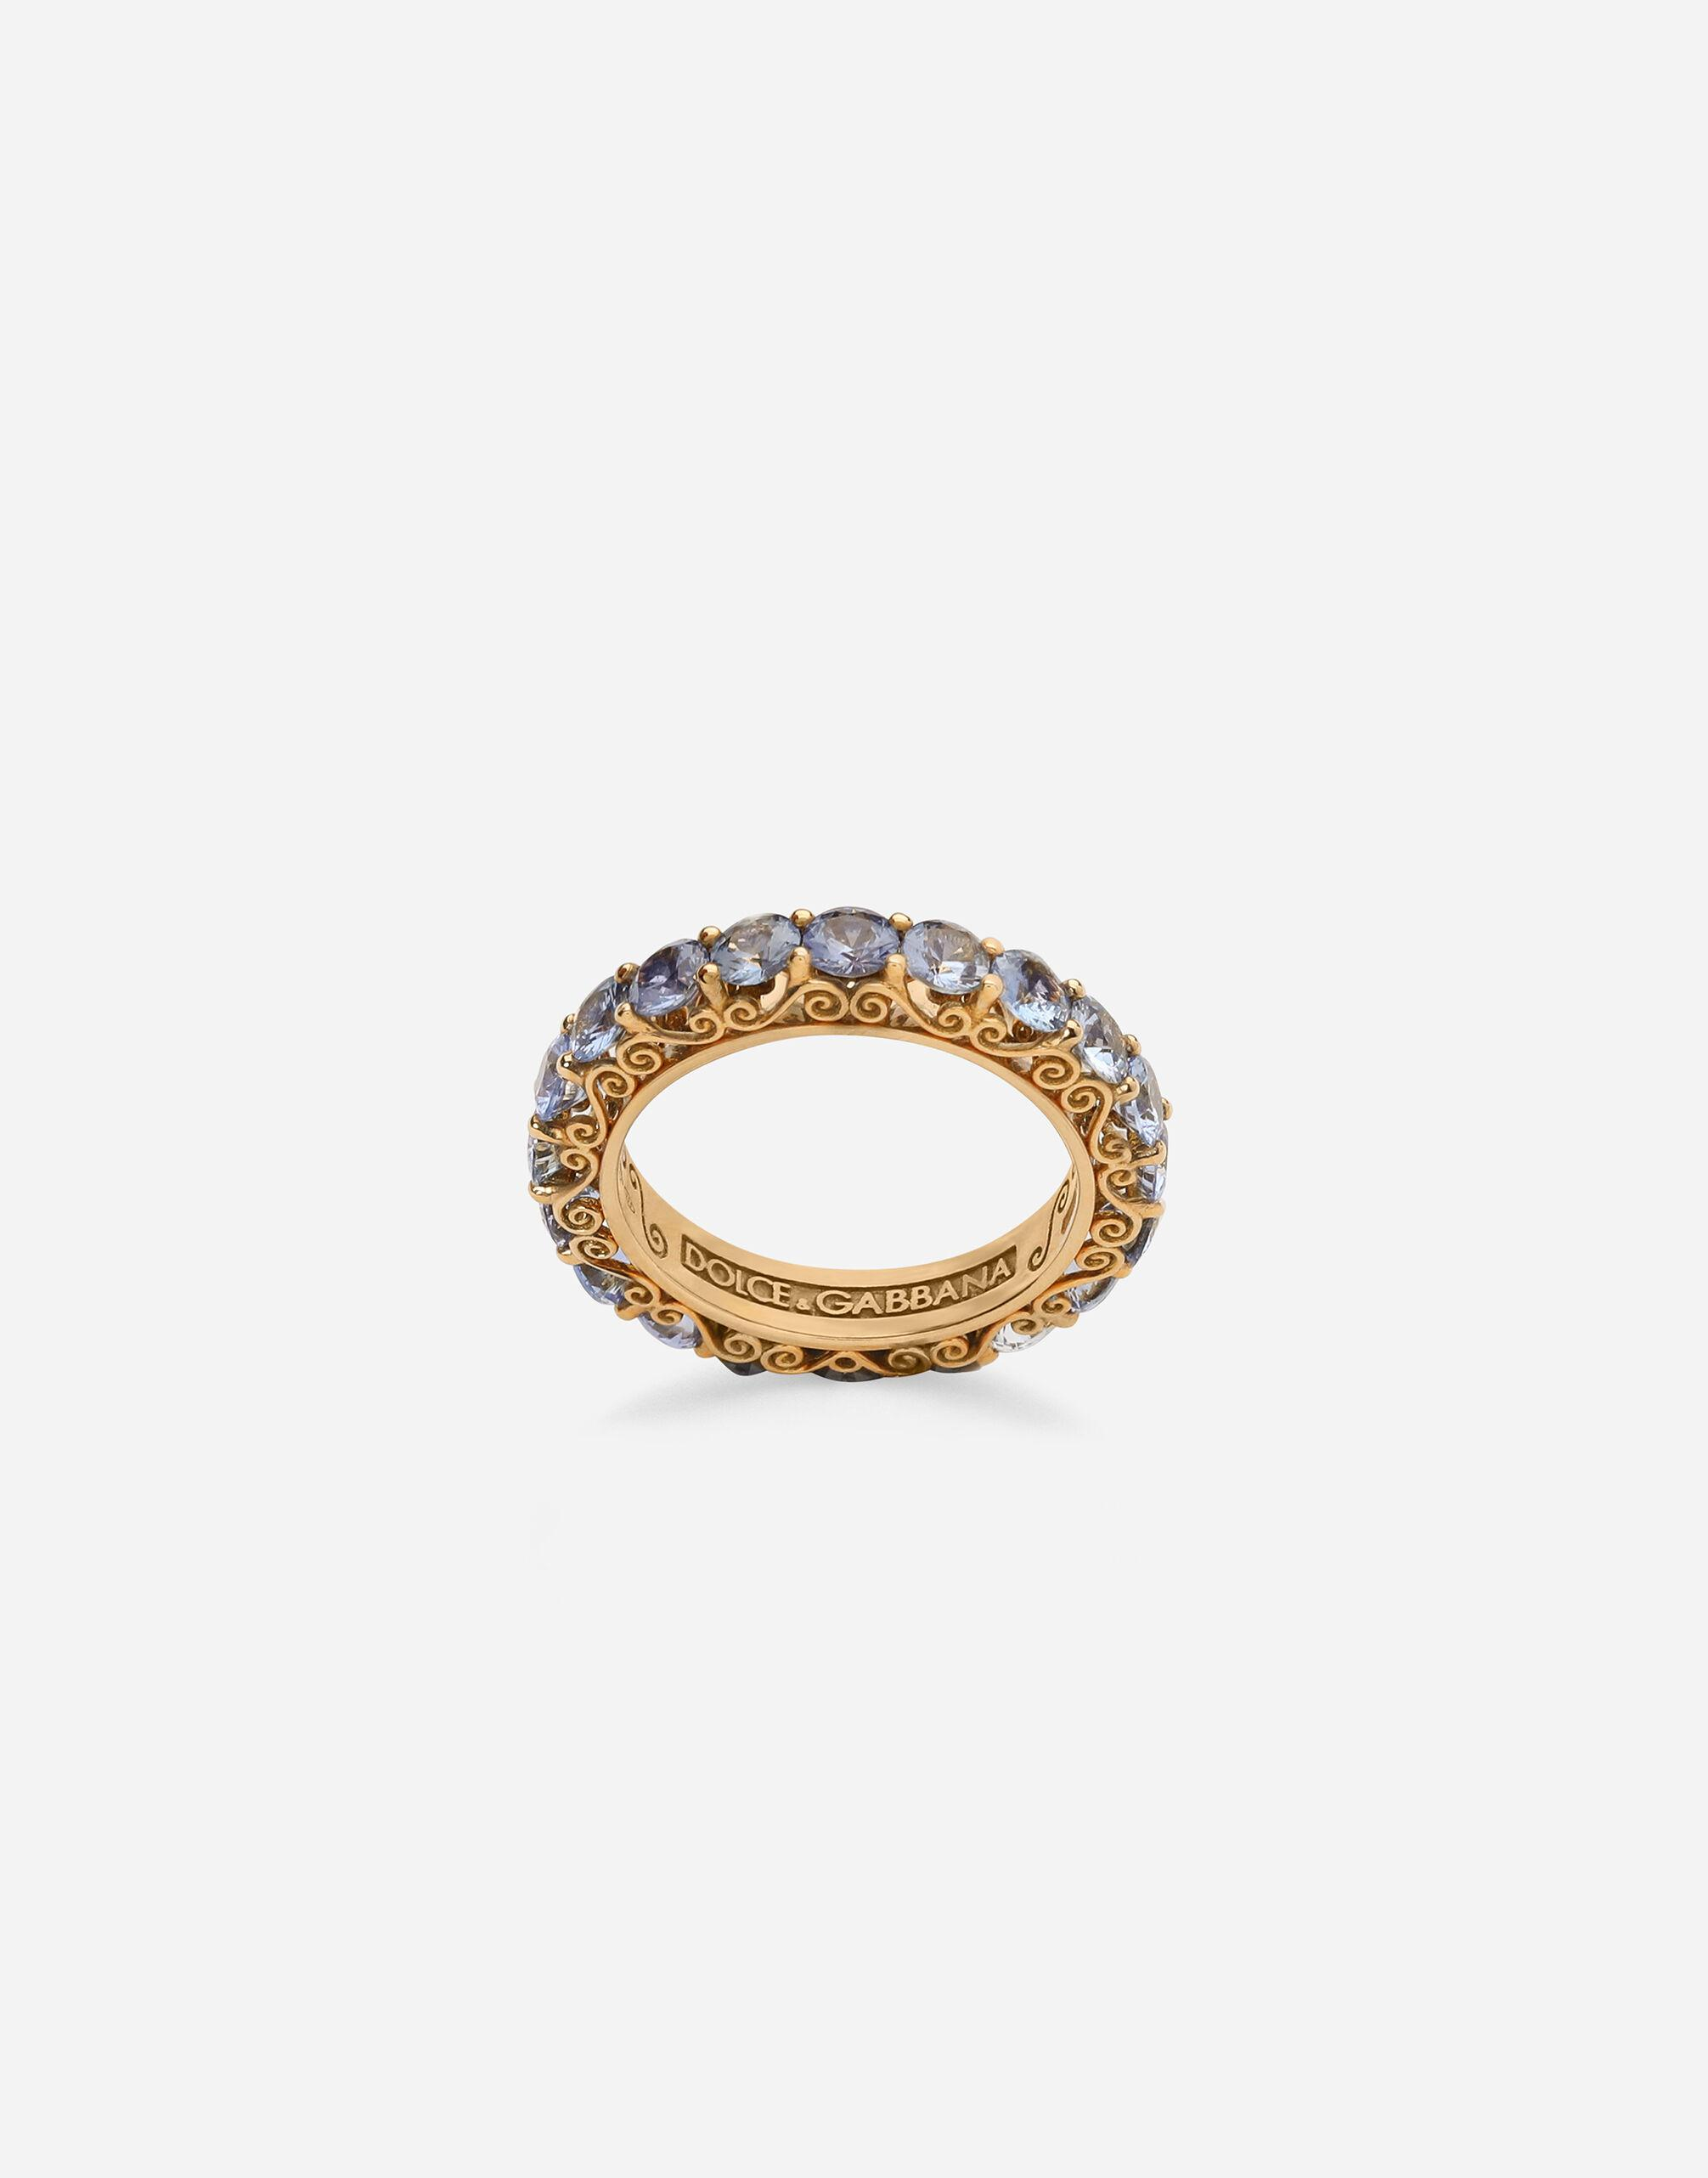 Heritage band ring in yellow 18kt gold with light blue sapphires